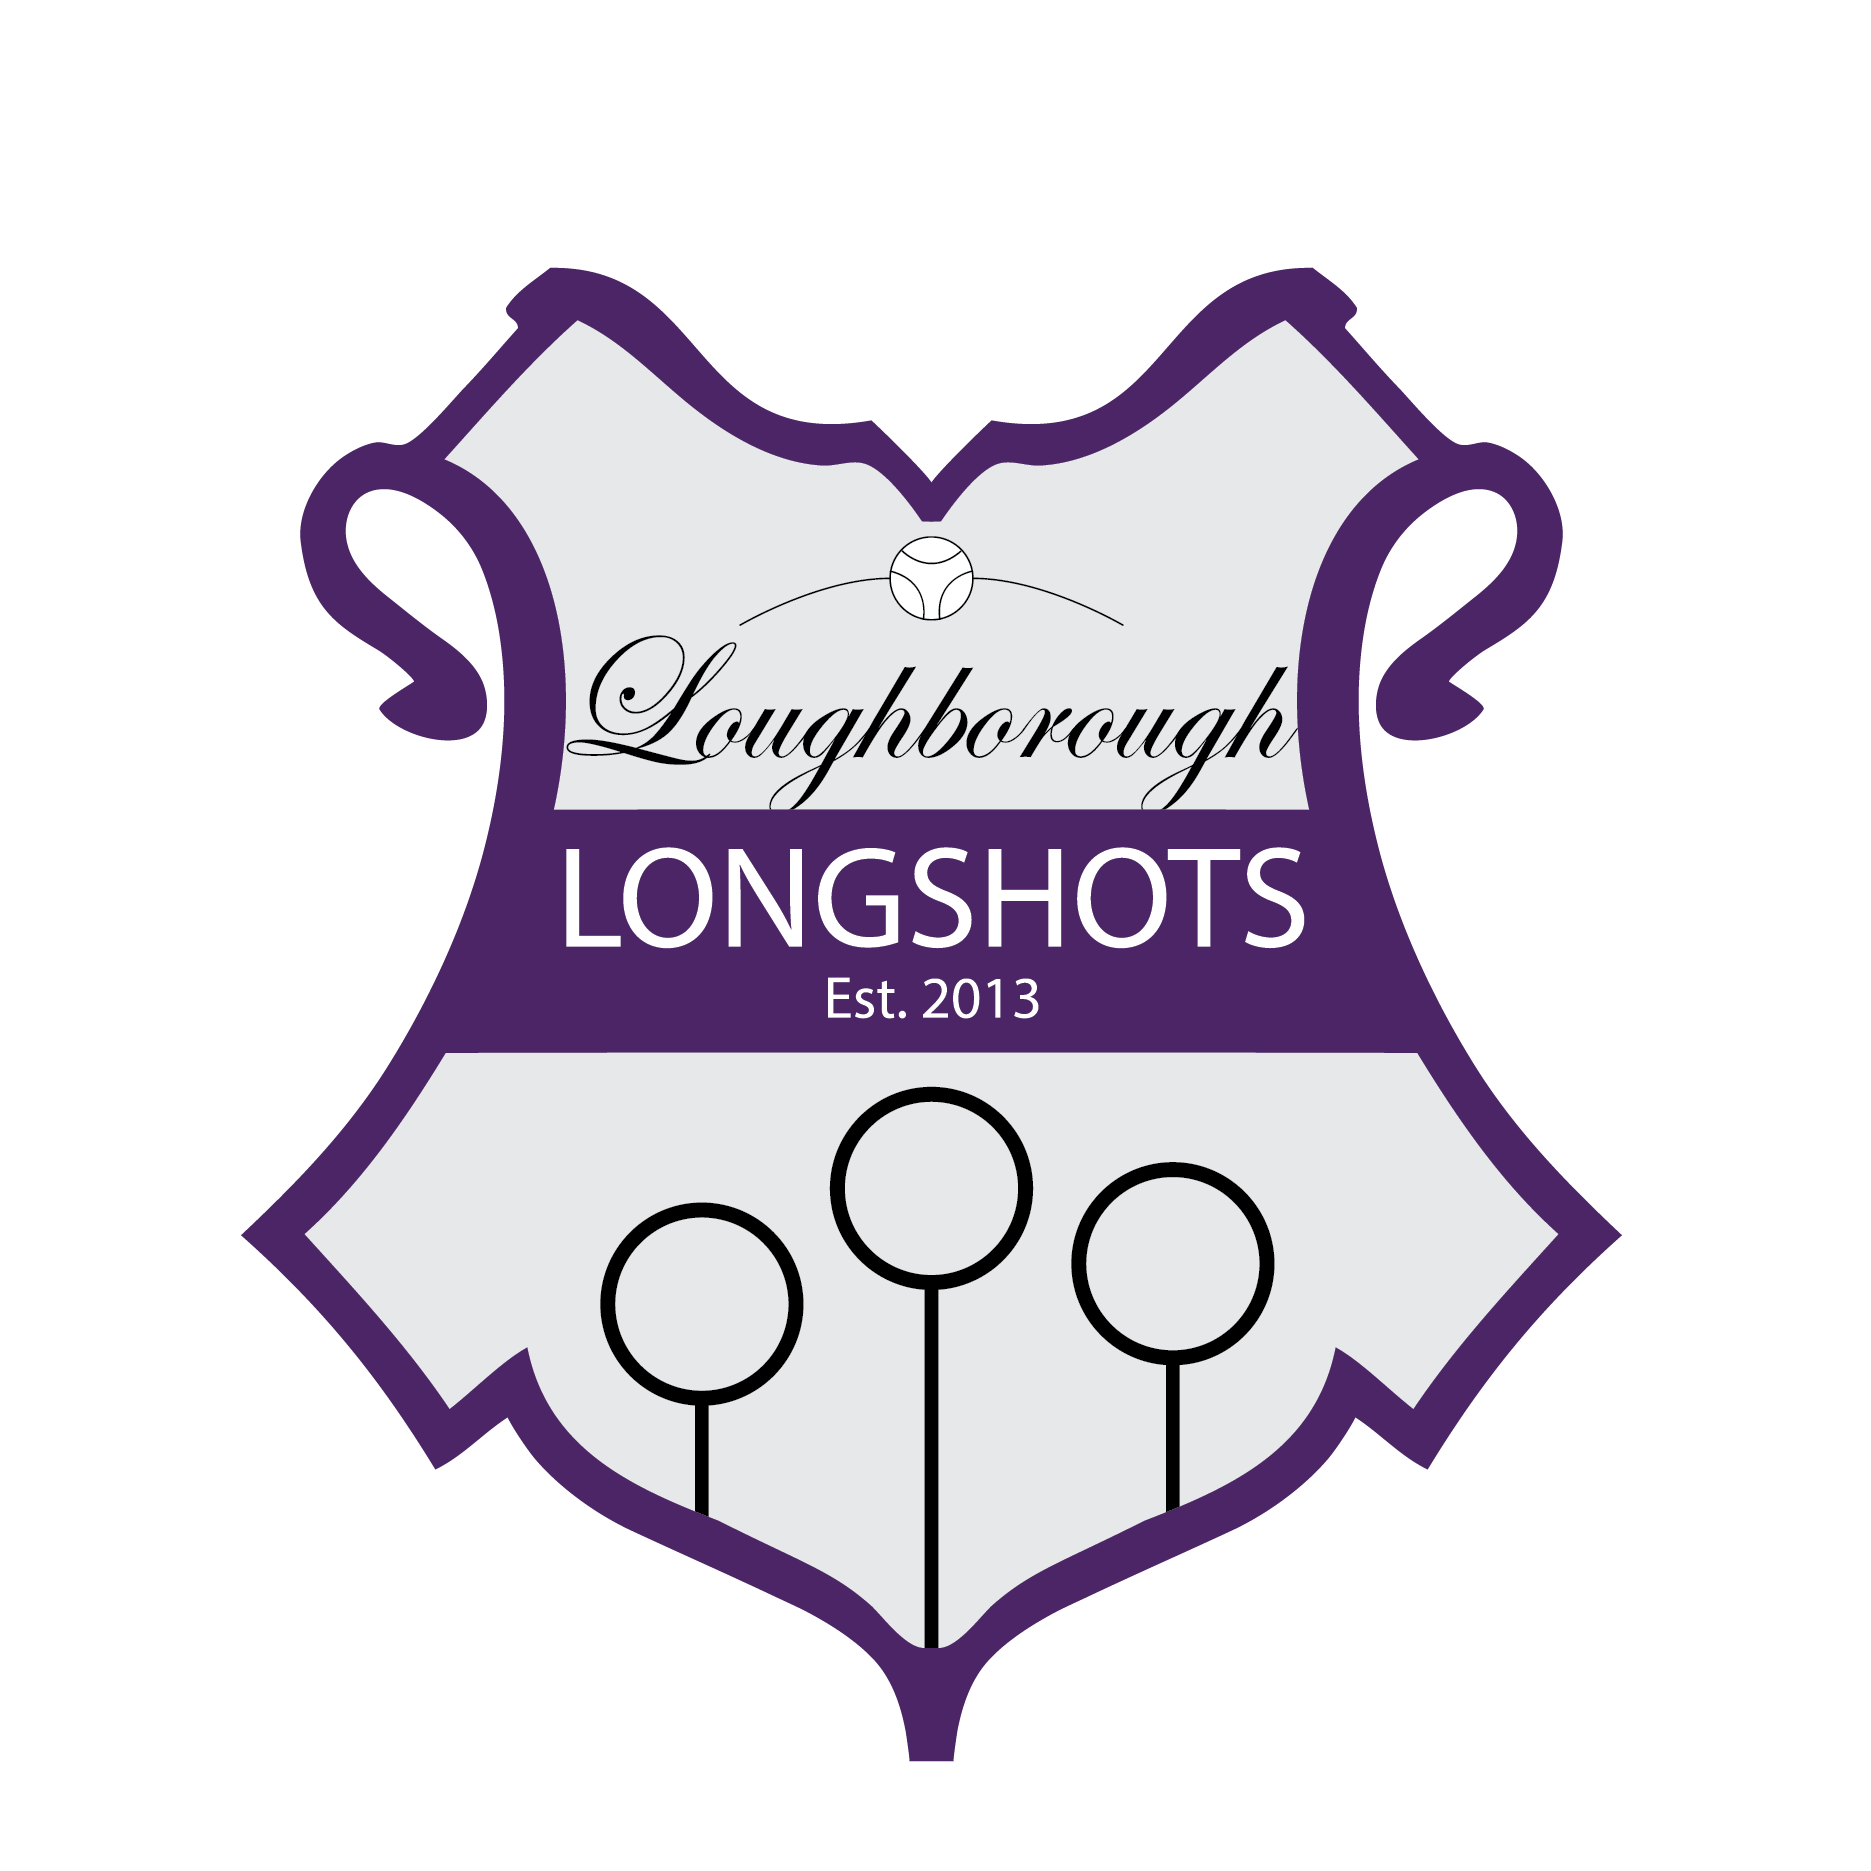 Loughborough Longshots logo